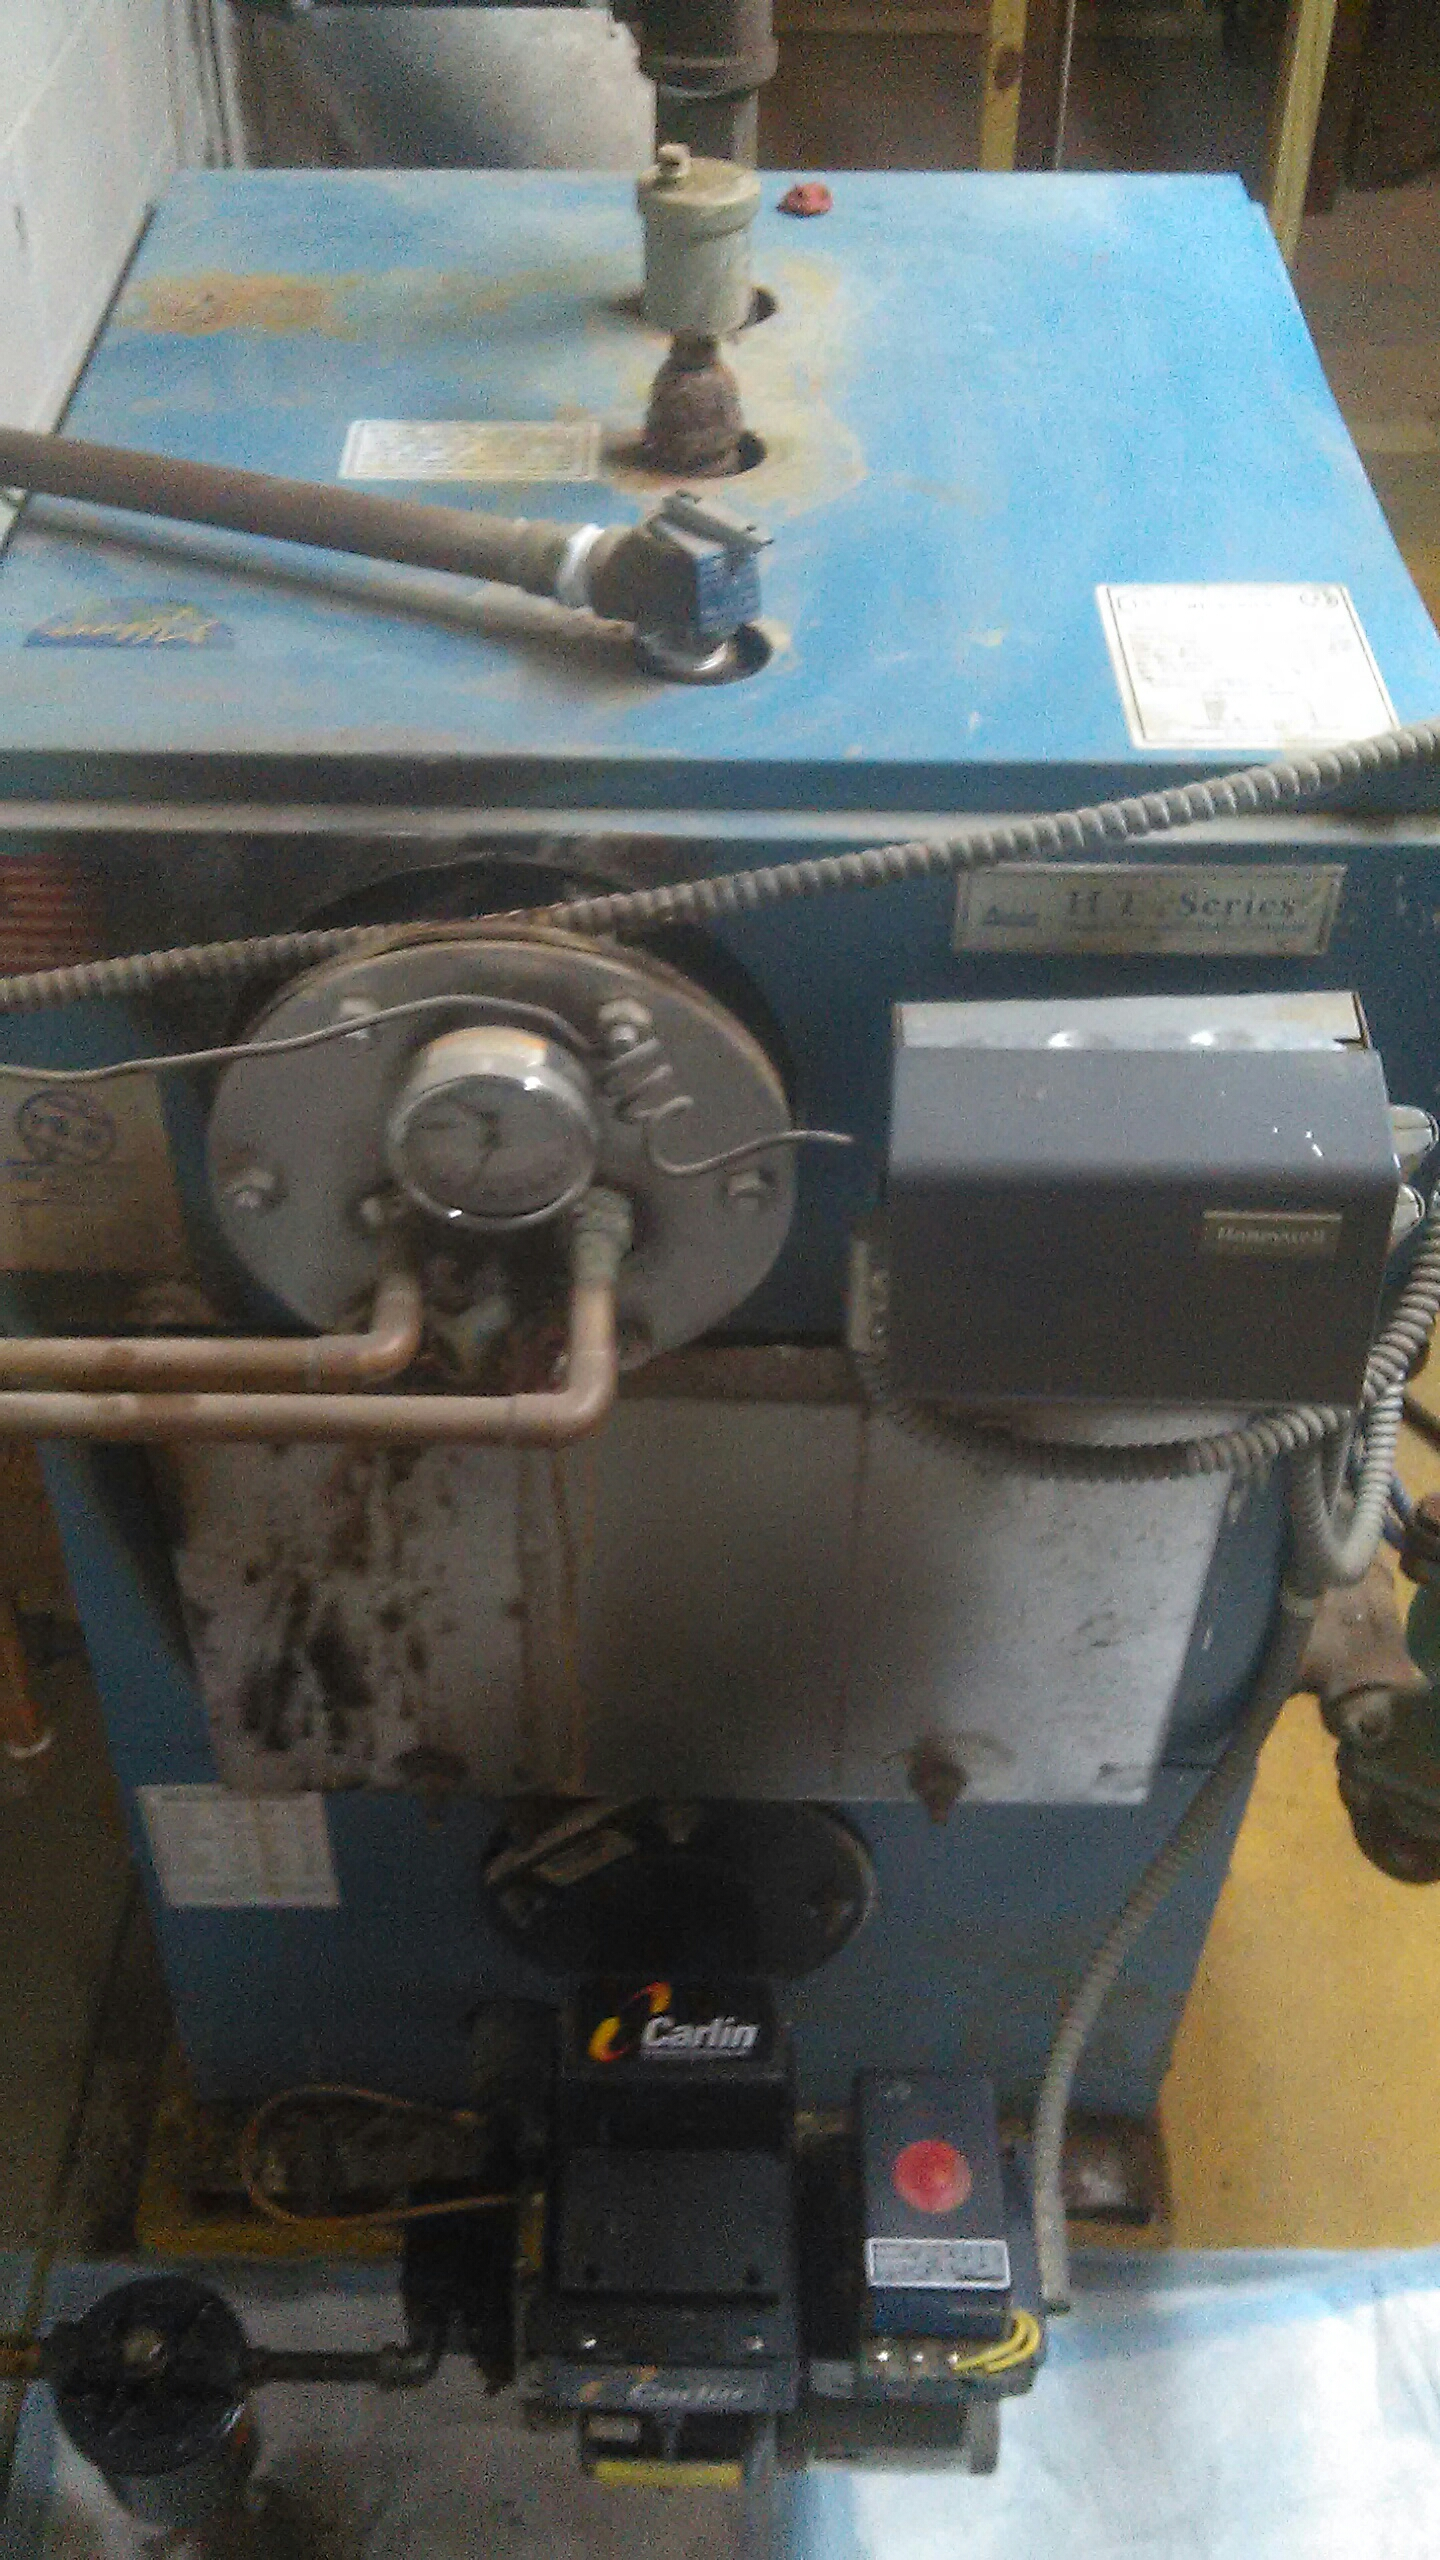 Bristol, PA - Performed a heating oil burner clean and tune on a Thermodynamics model Ht-125.